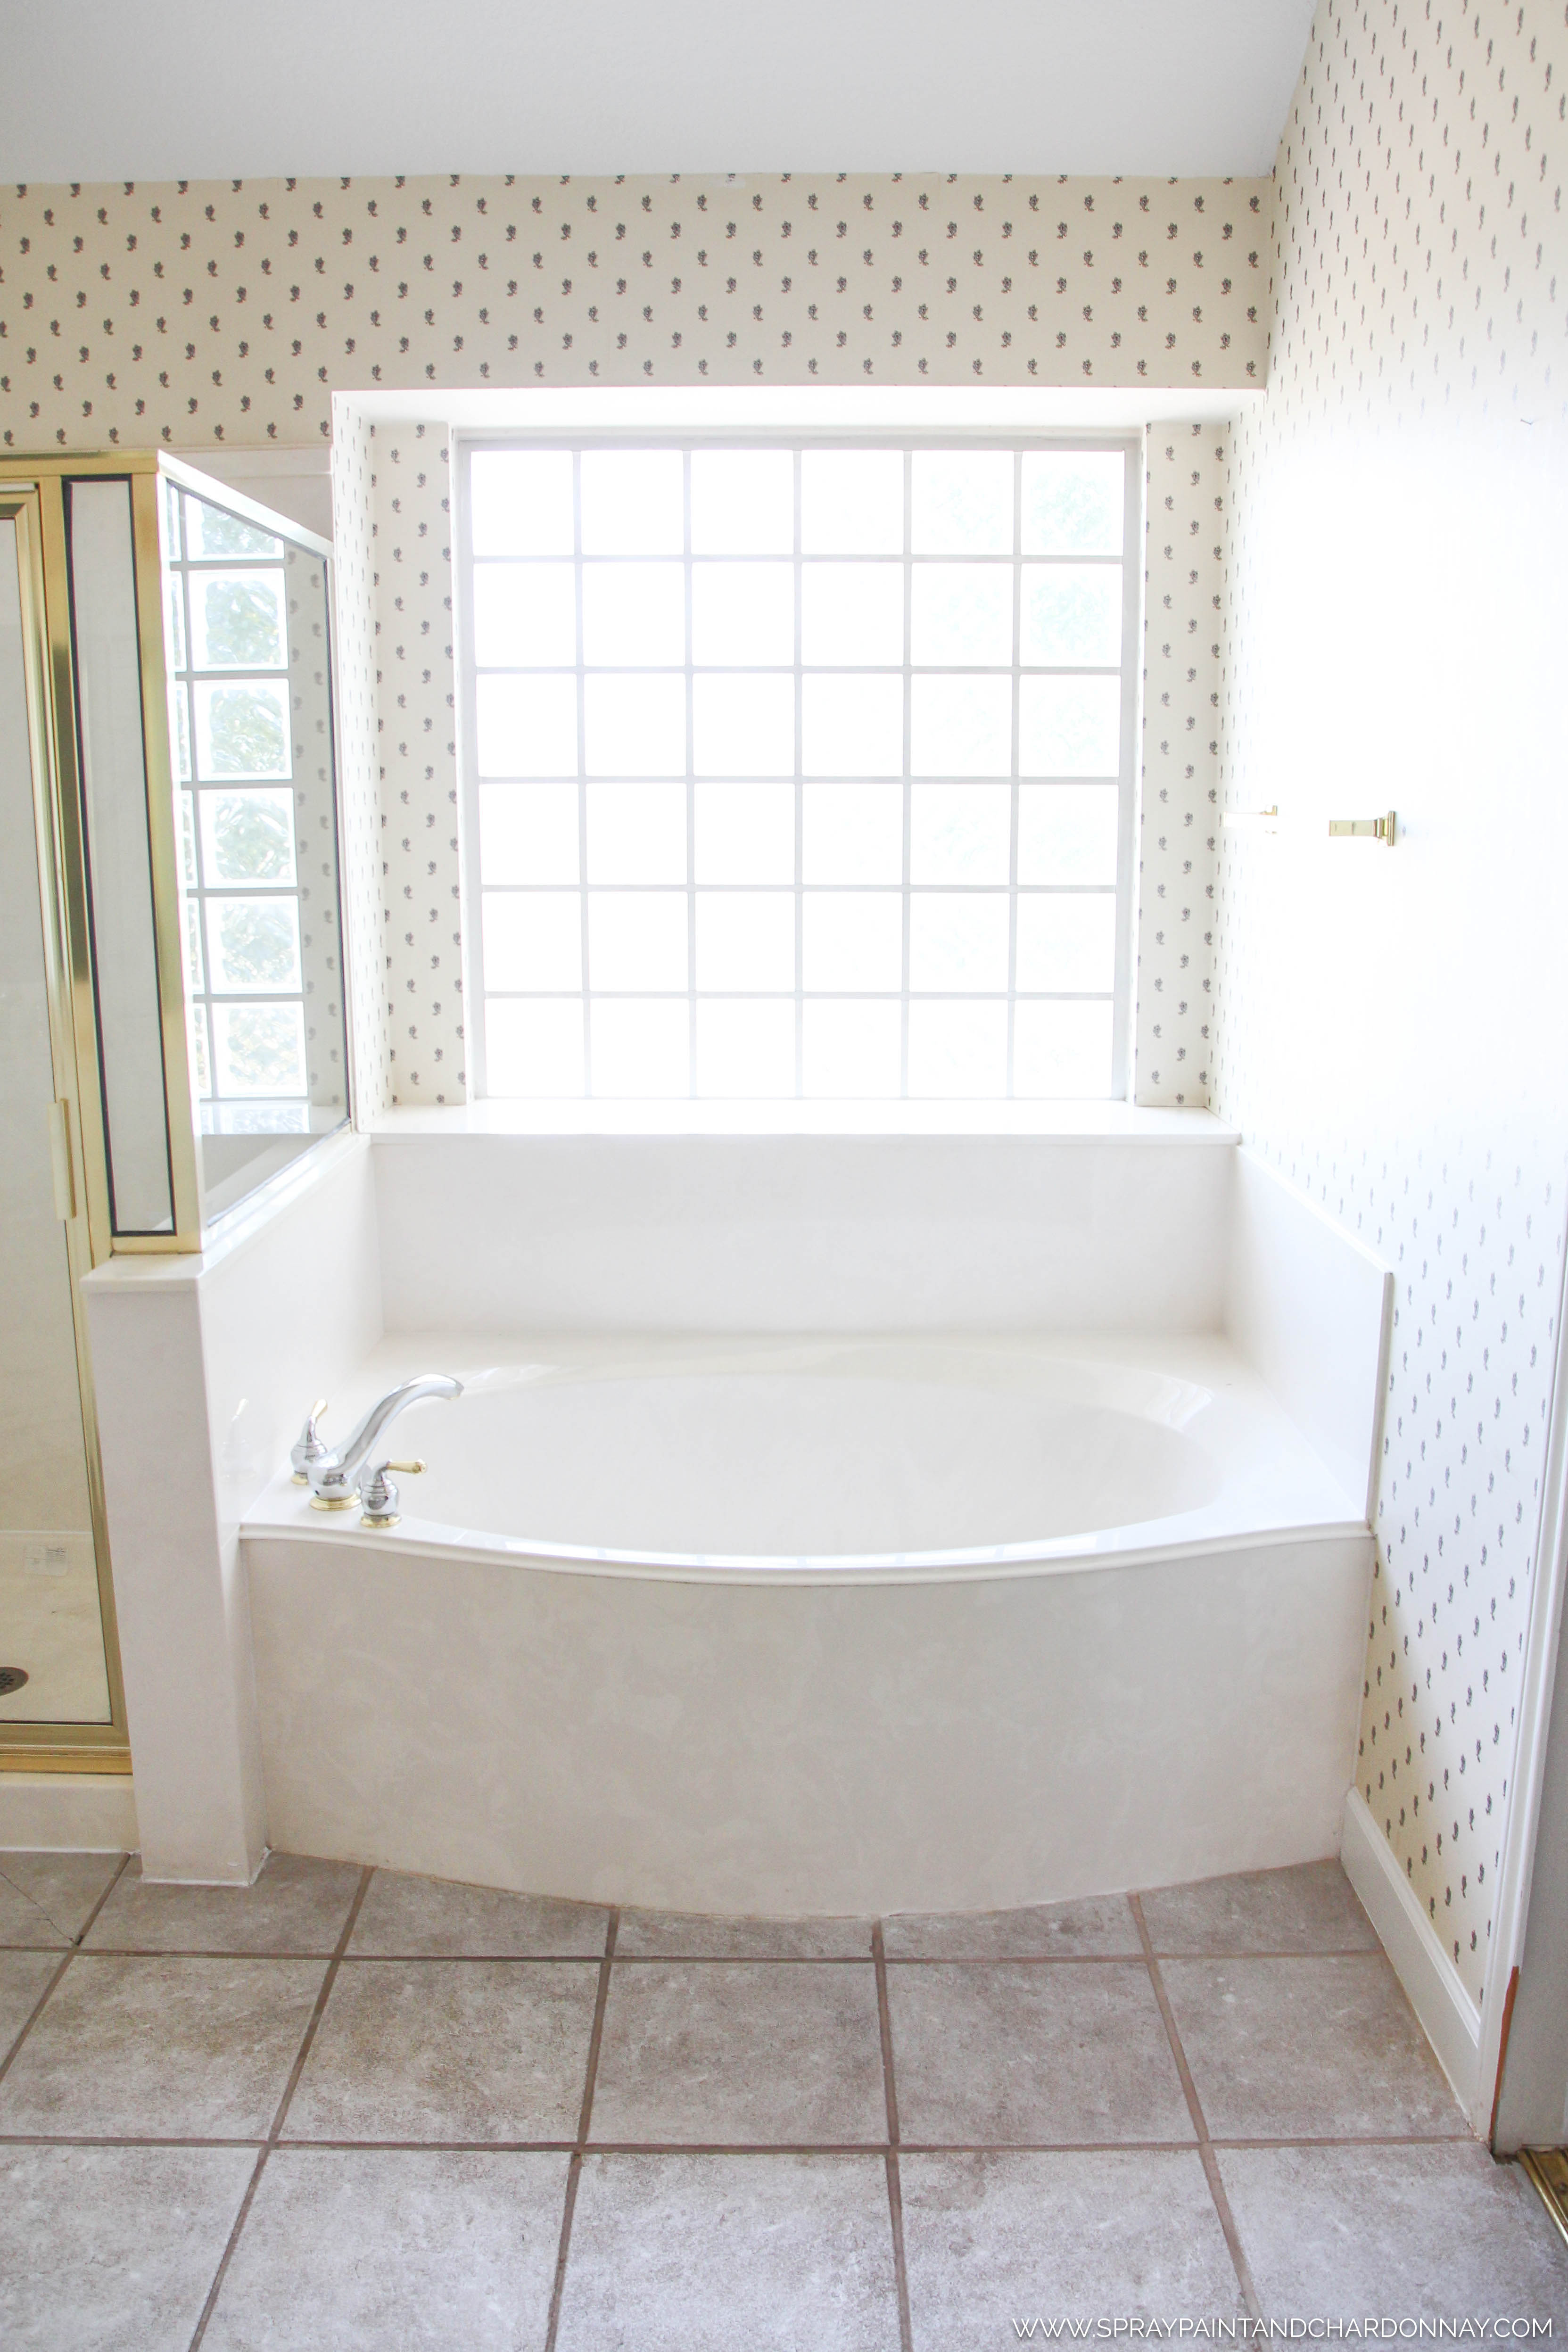 BEFORE & AFTER: MASTER BATHROOM | Spray Paint & Chardonnay